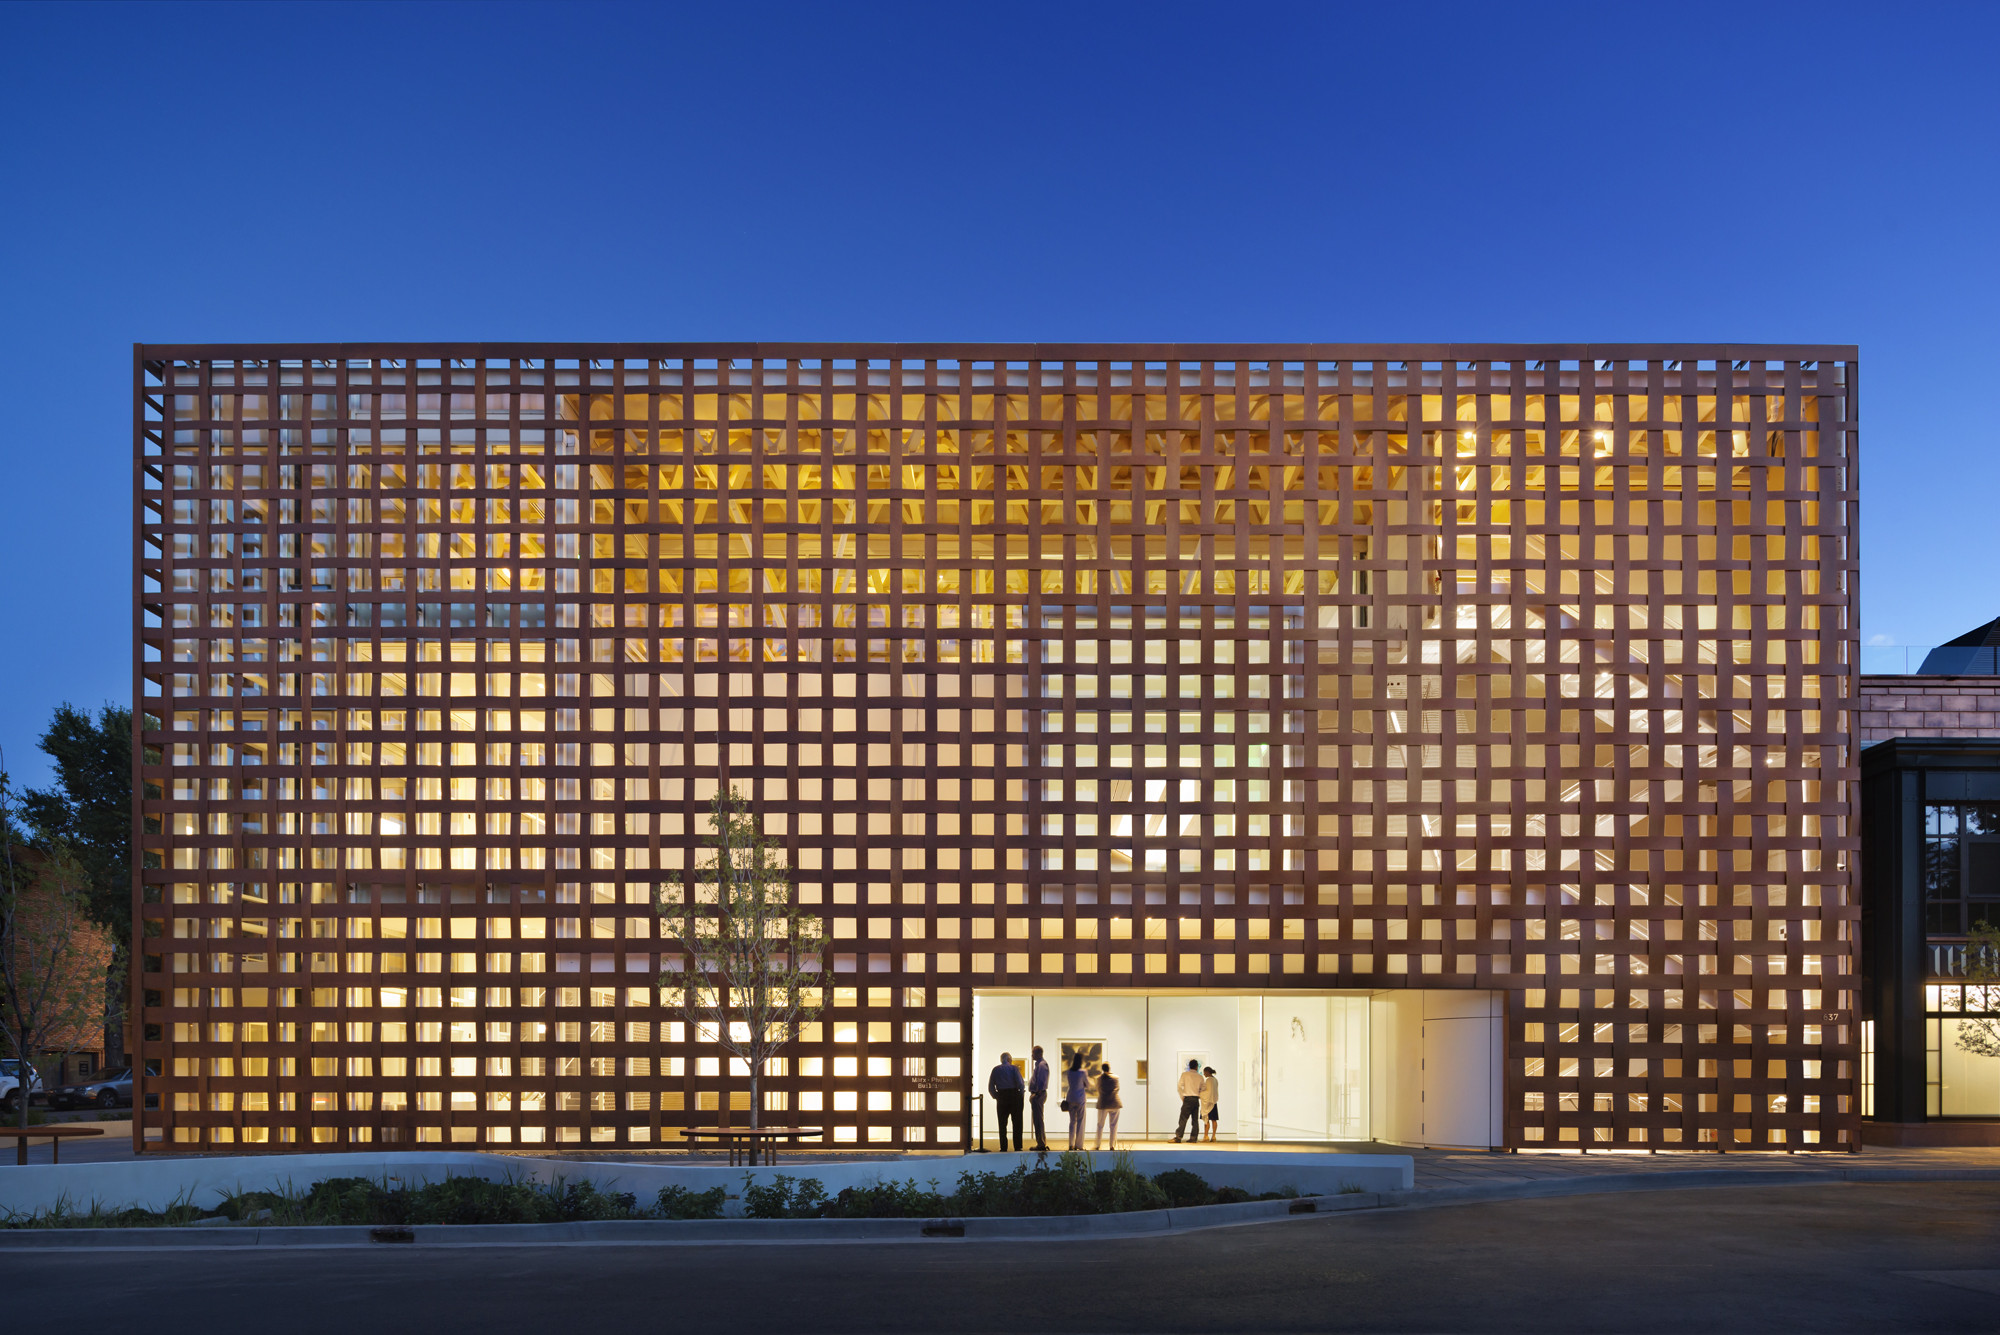 Wood Design & Building Magazine Announces Winners of its 2014 Wood Awards, Aspen Art Museum (Aspen, CO) Shigeru Ban Architects. Image © Michael Moran/OTTO